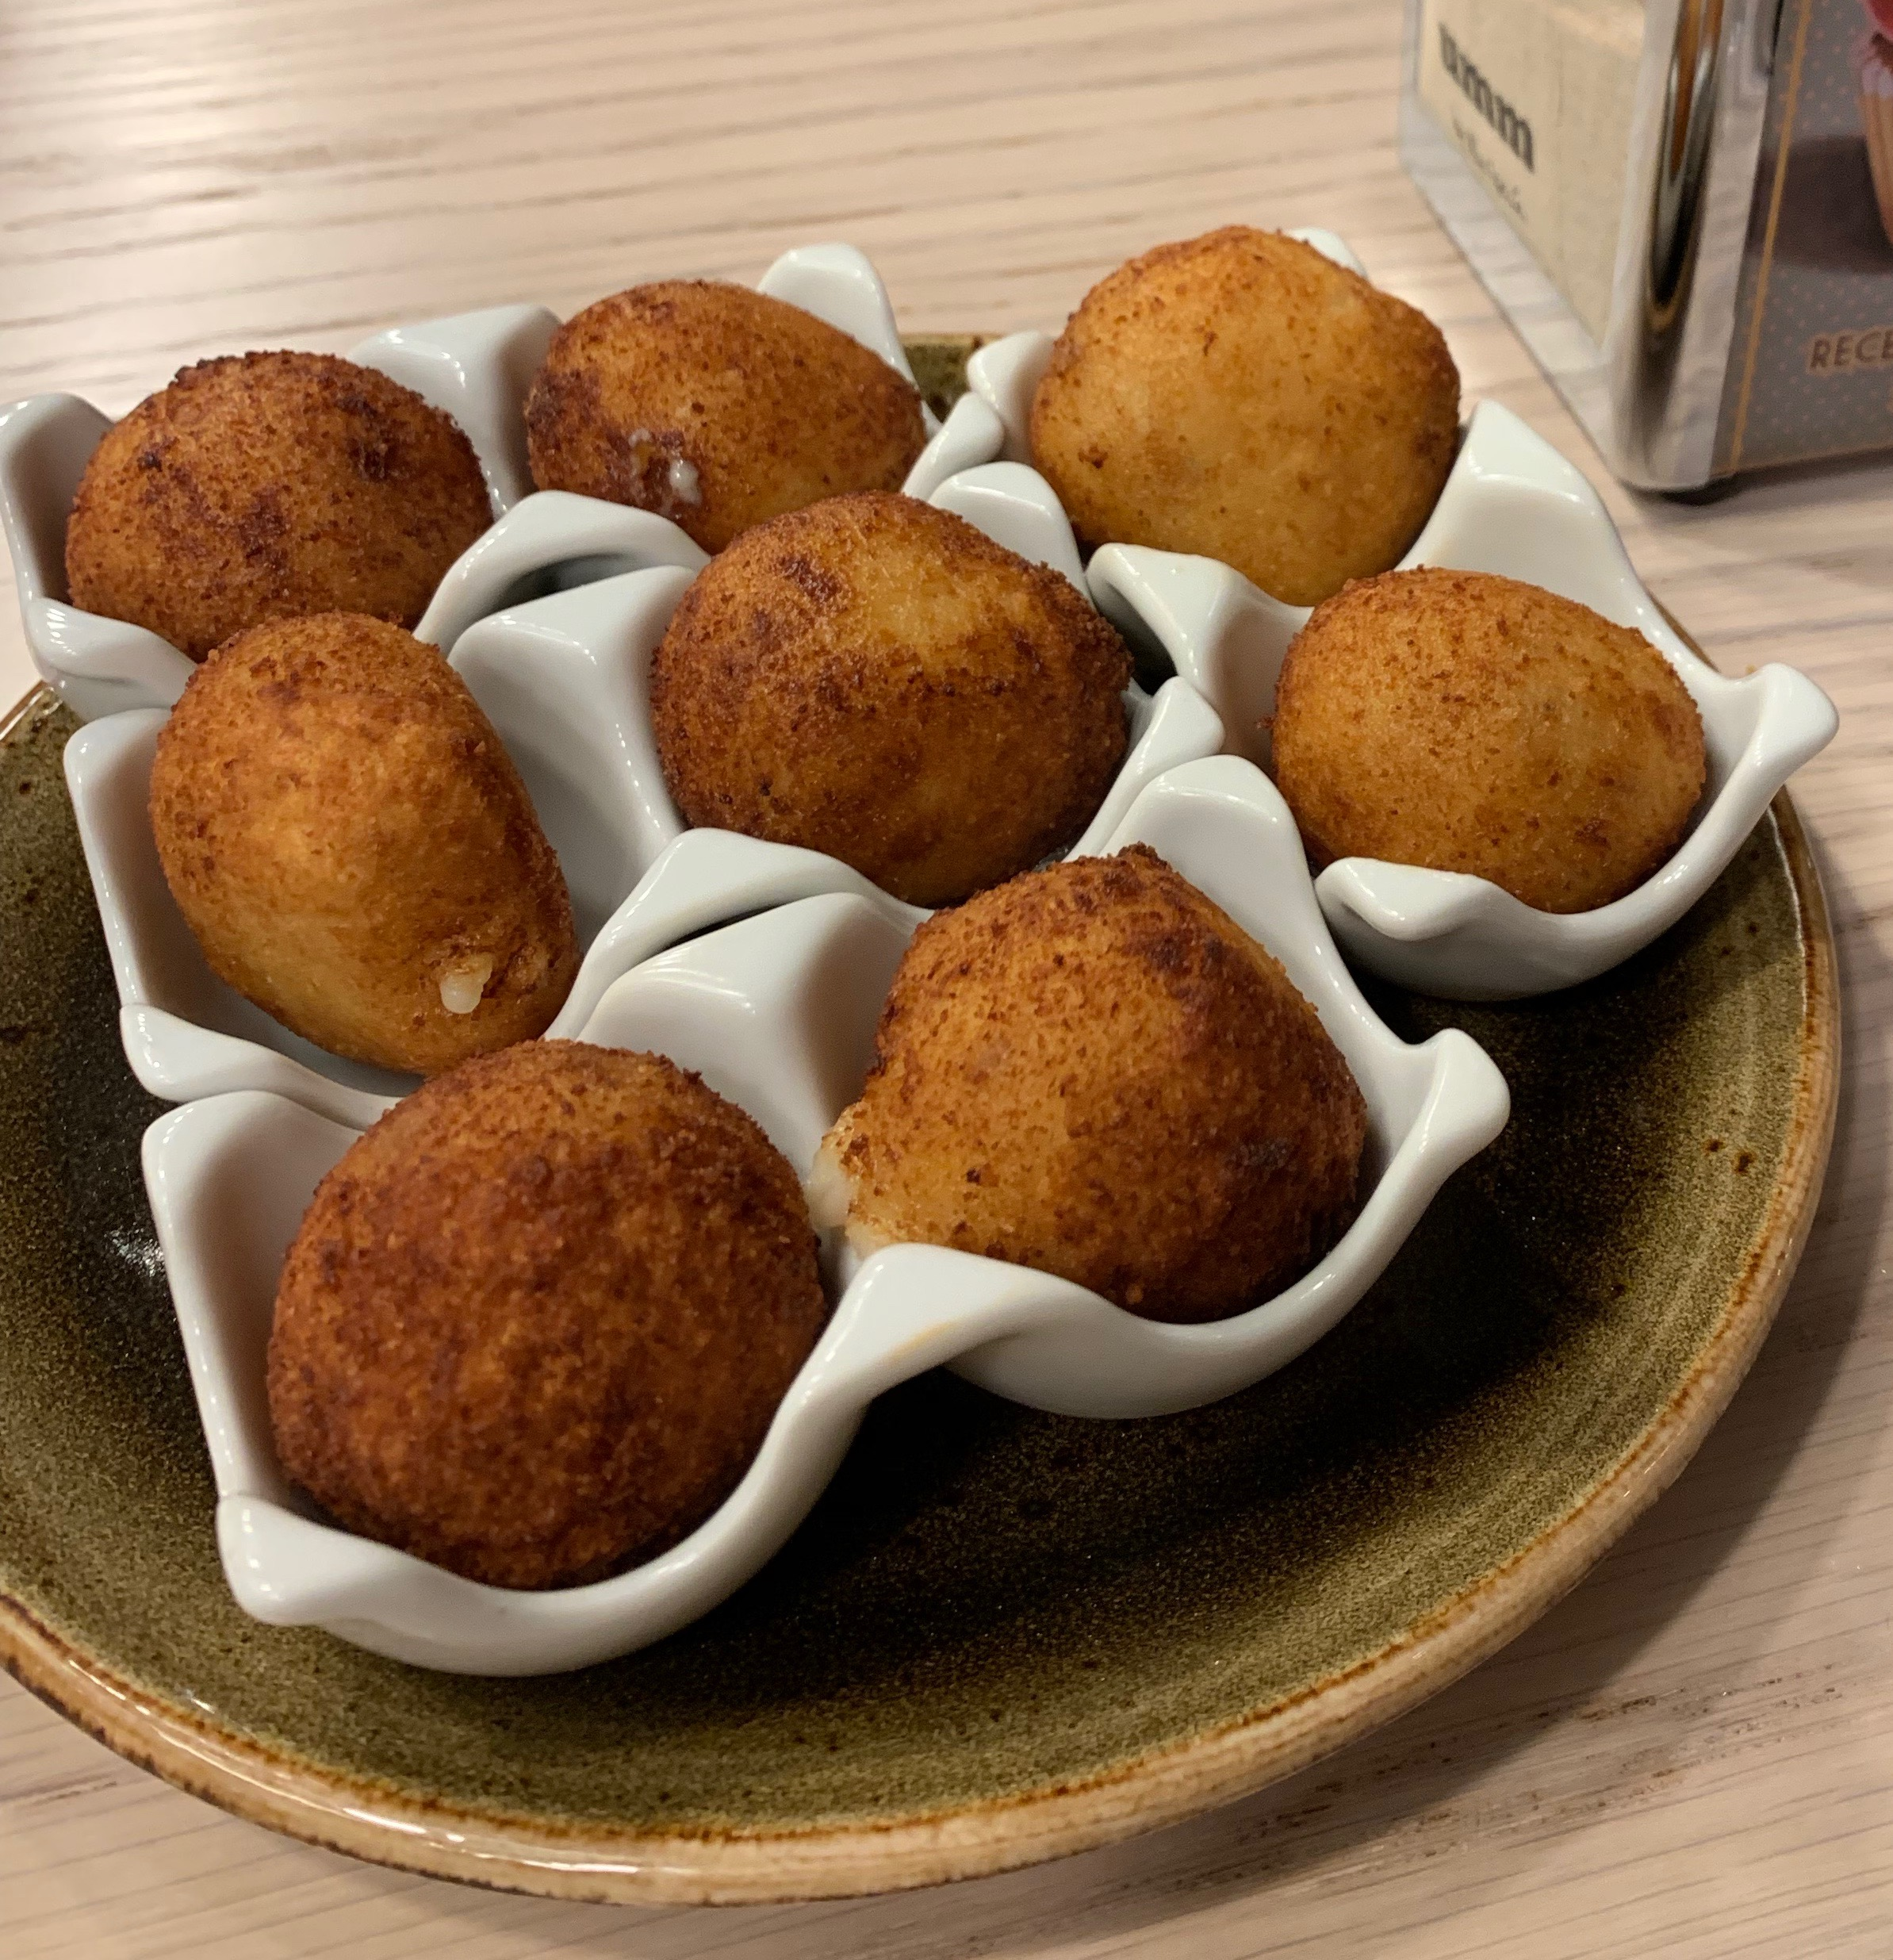 Delicious croquetas, filled with a creamy béchamel sauce and other ingredients, can be found everywhere.